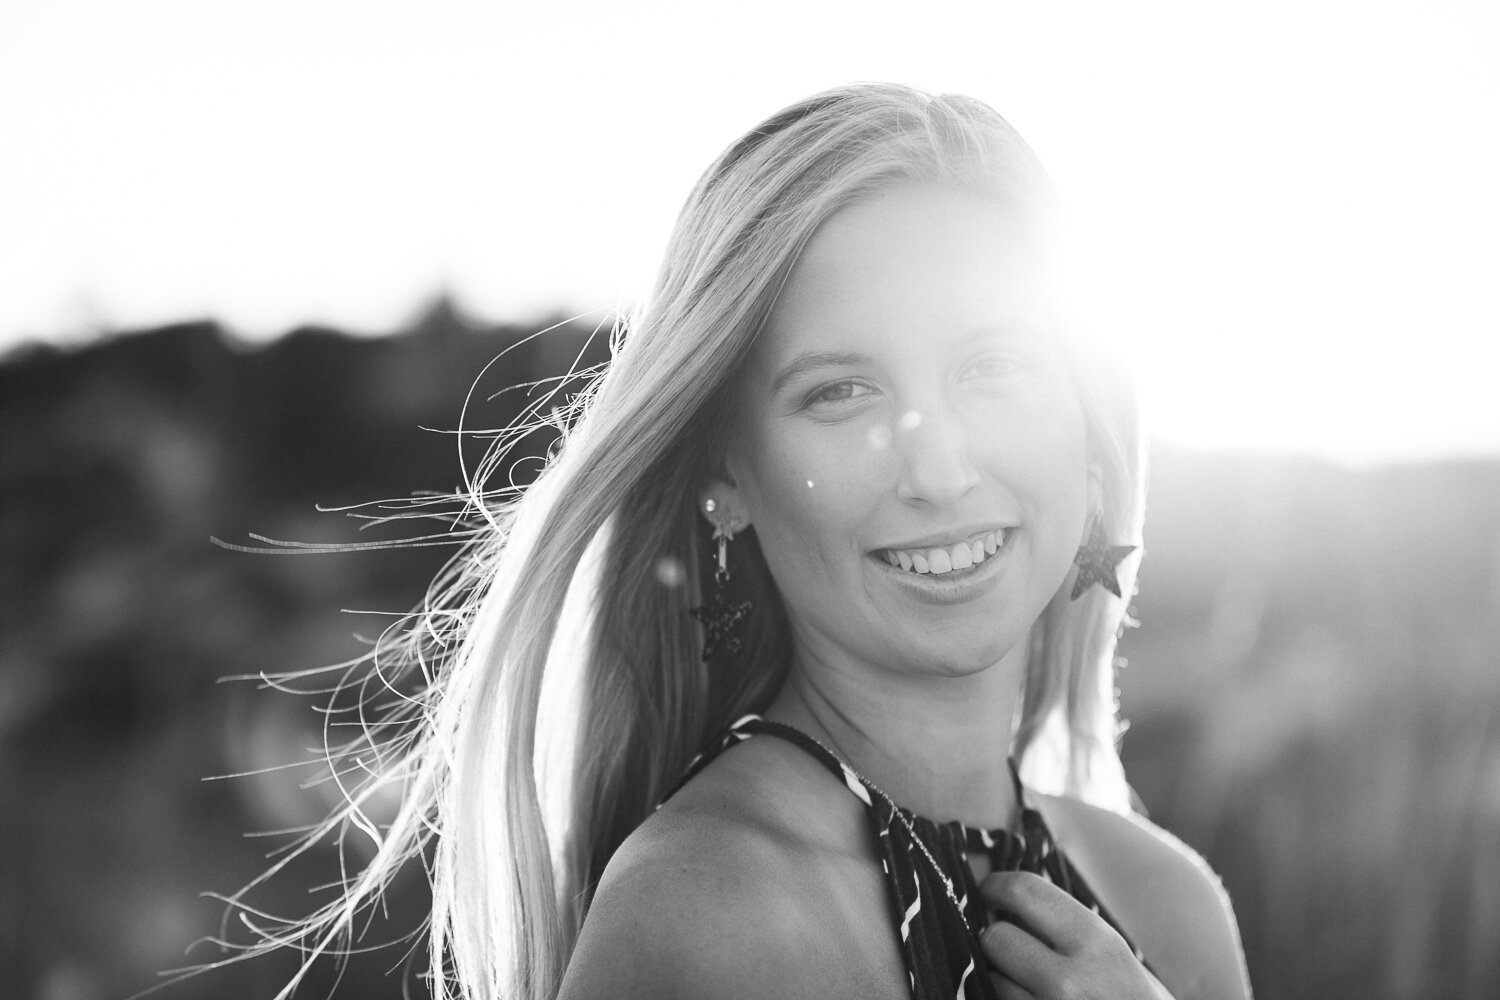 B&W photos during sunset in hanna park